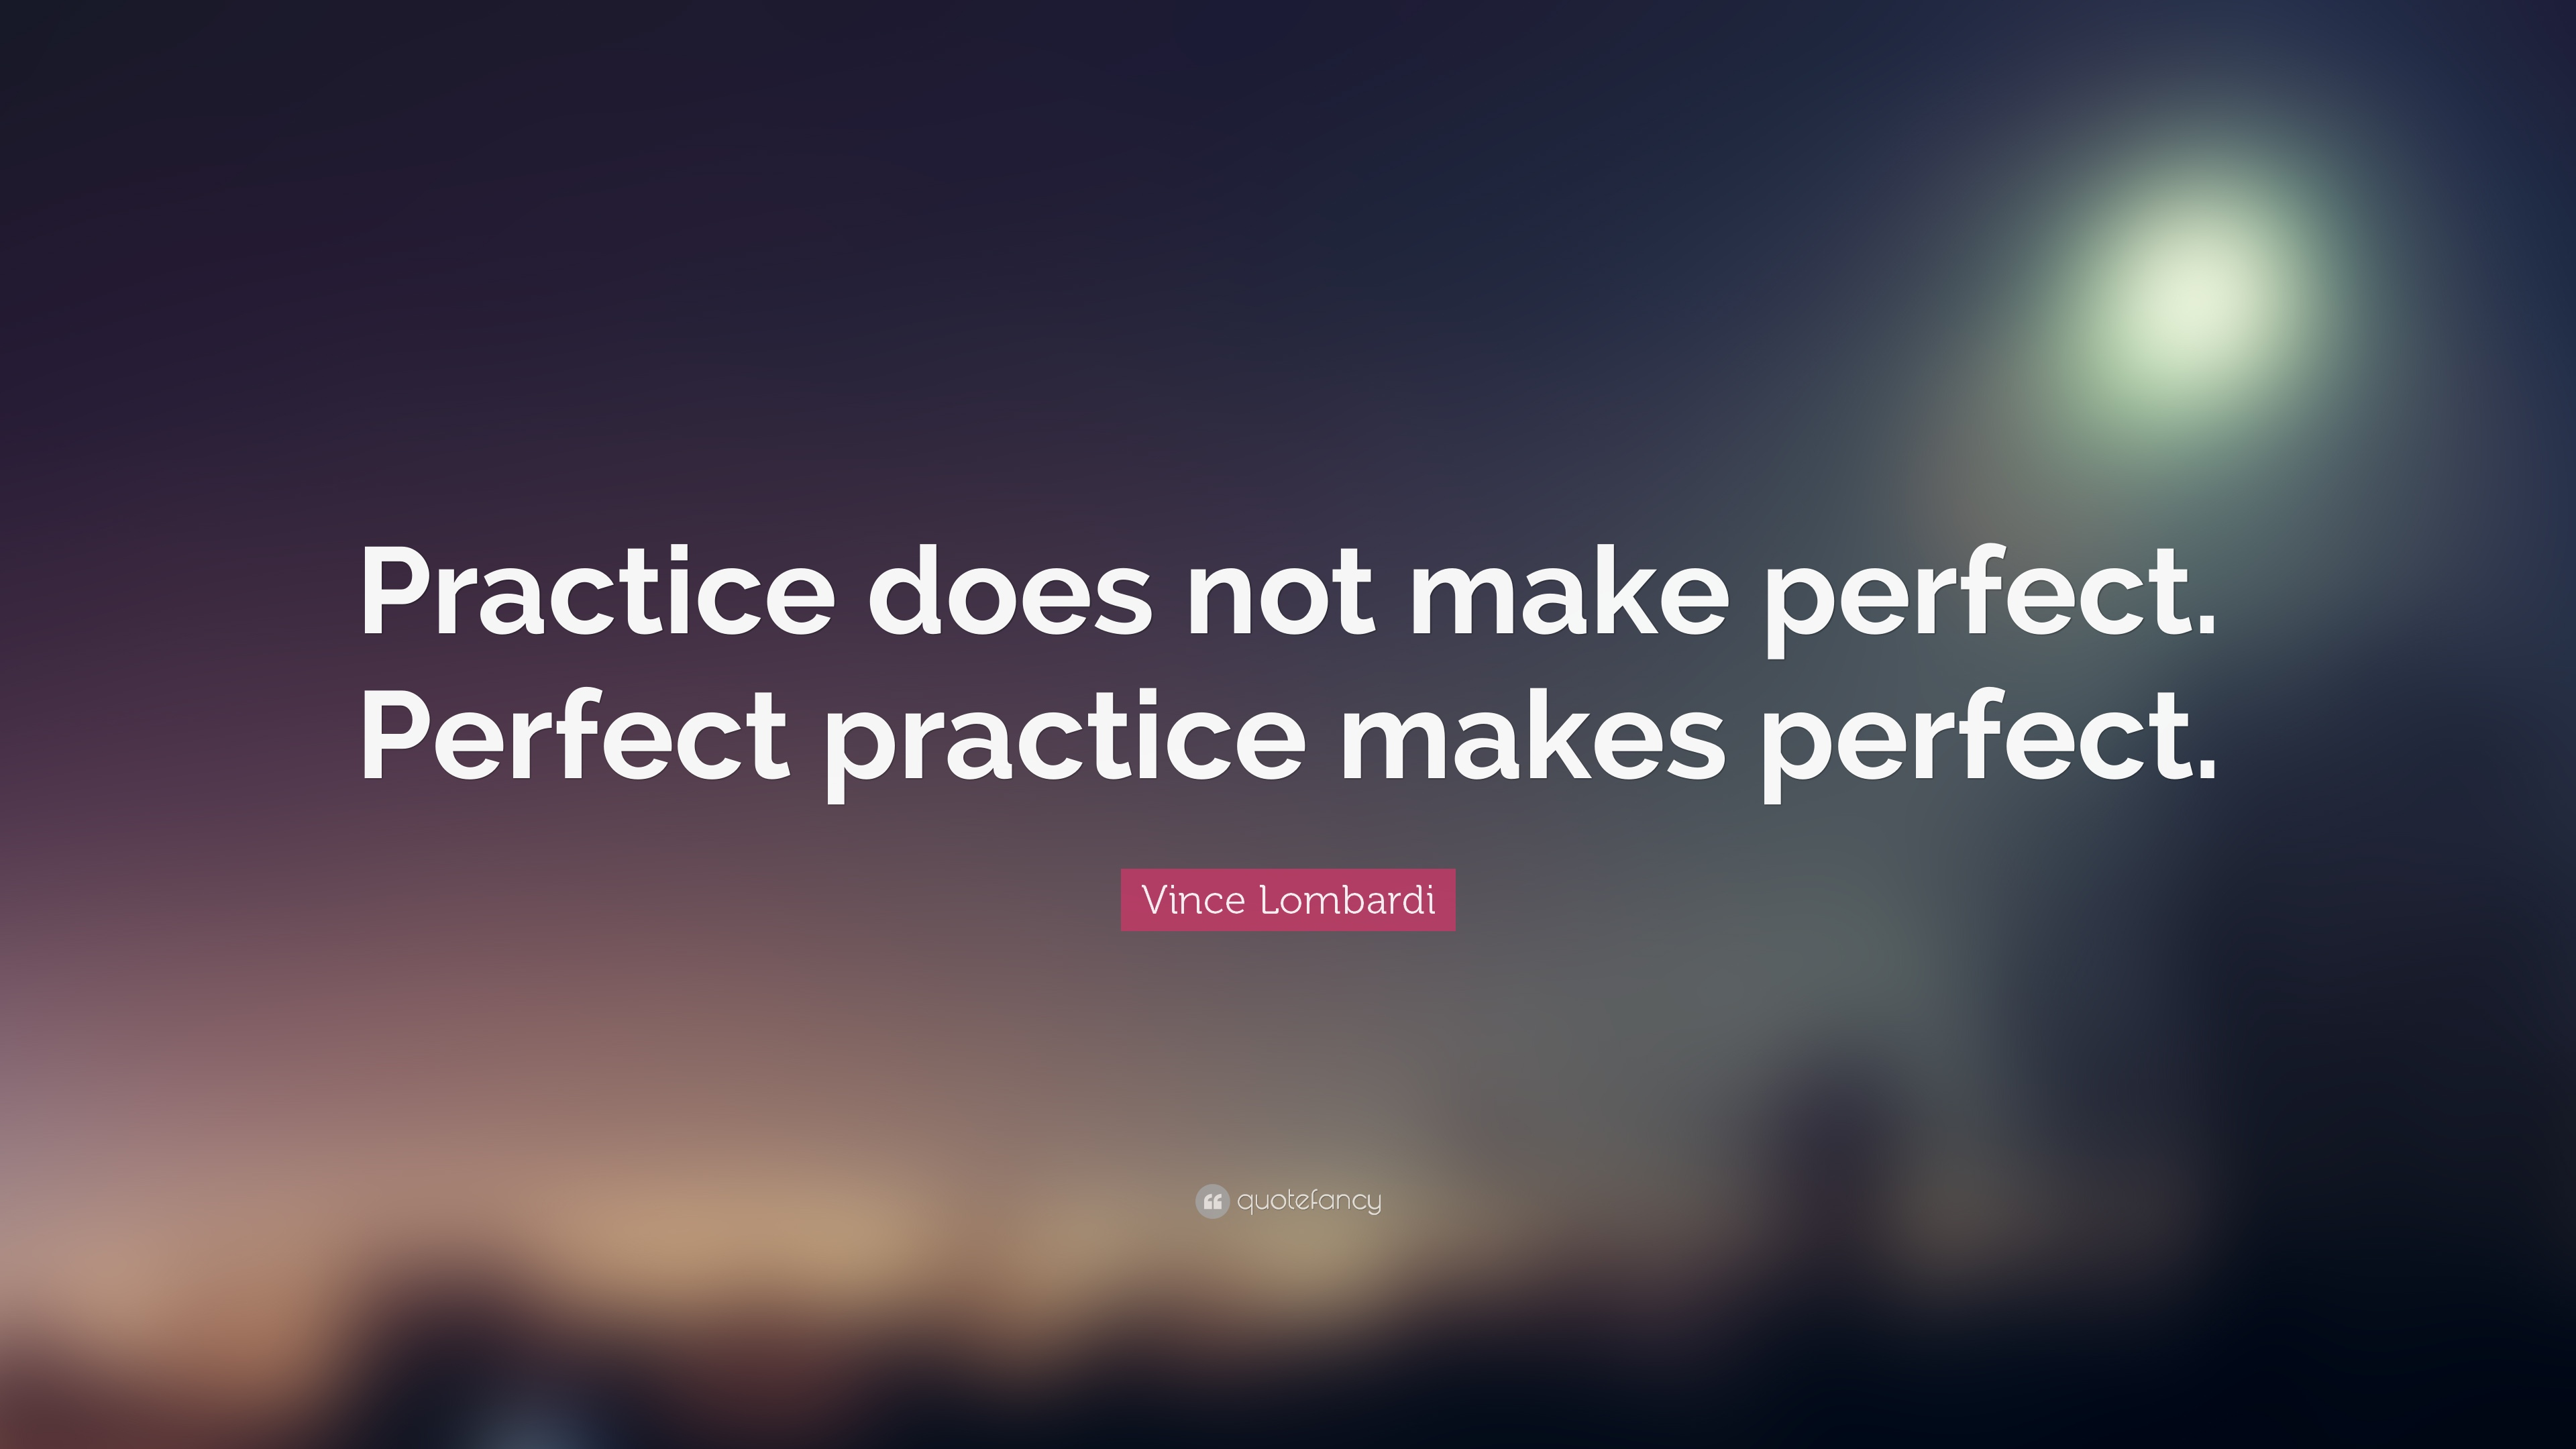 Motivational Football Quotes Wallpaper Vince Lombardi Quote Practice Does Not Make Perfect